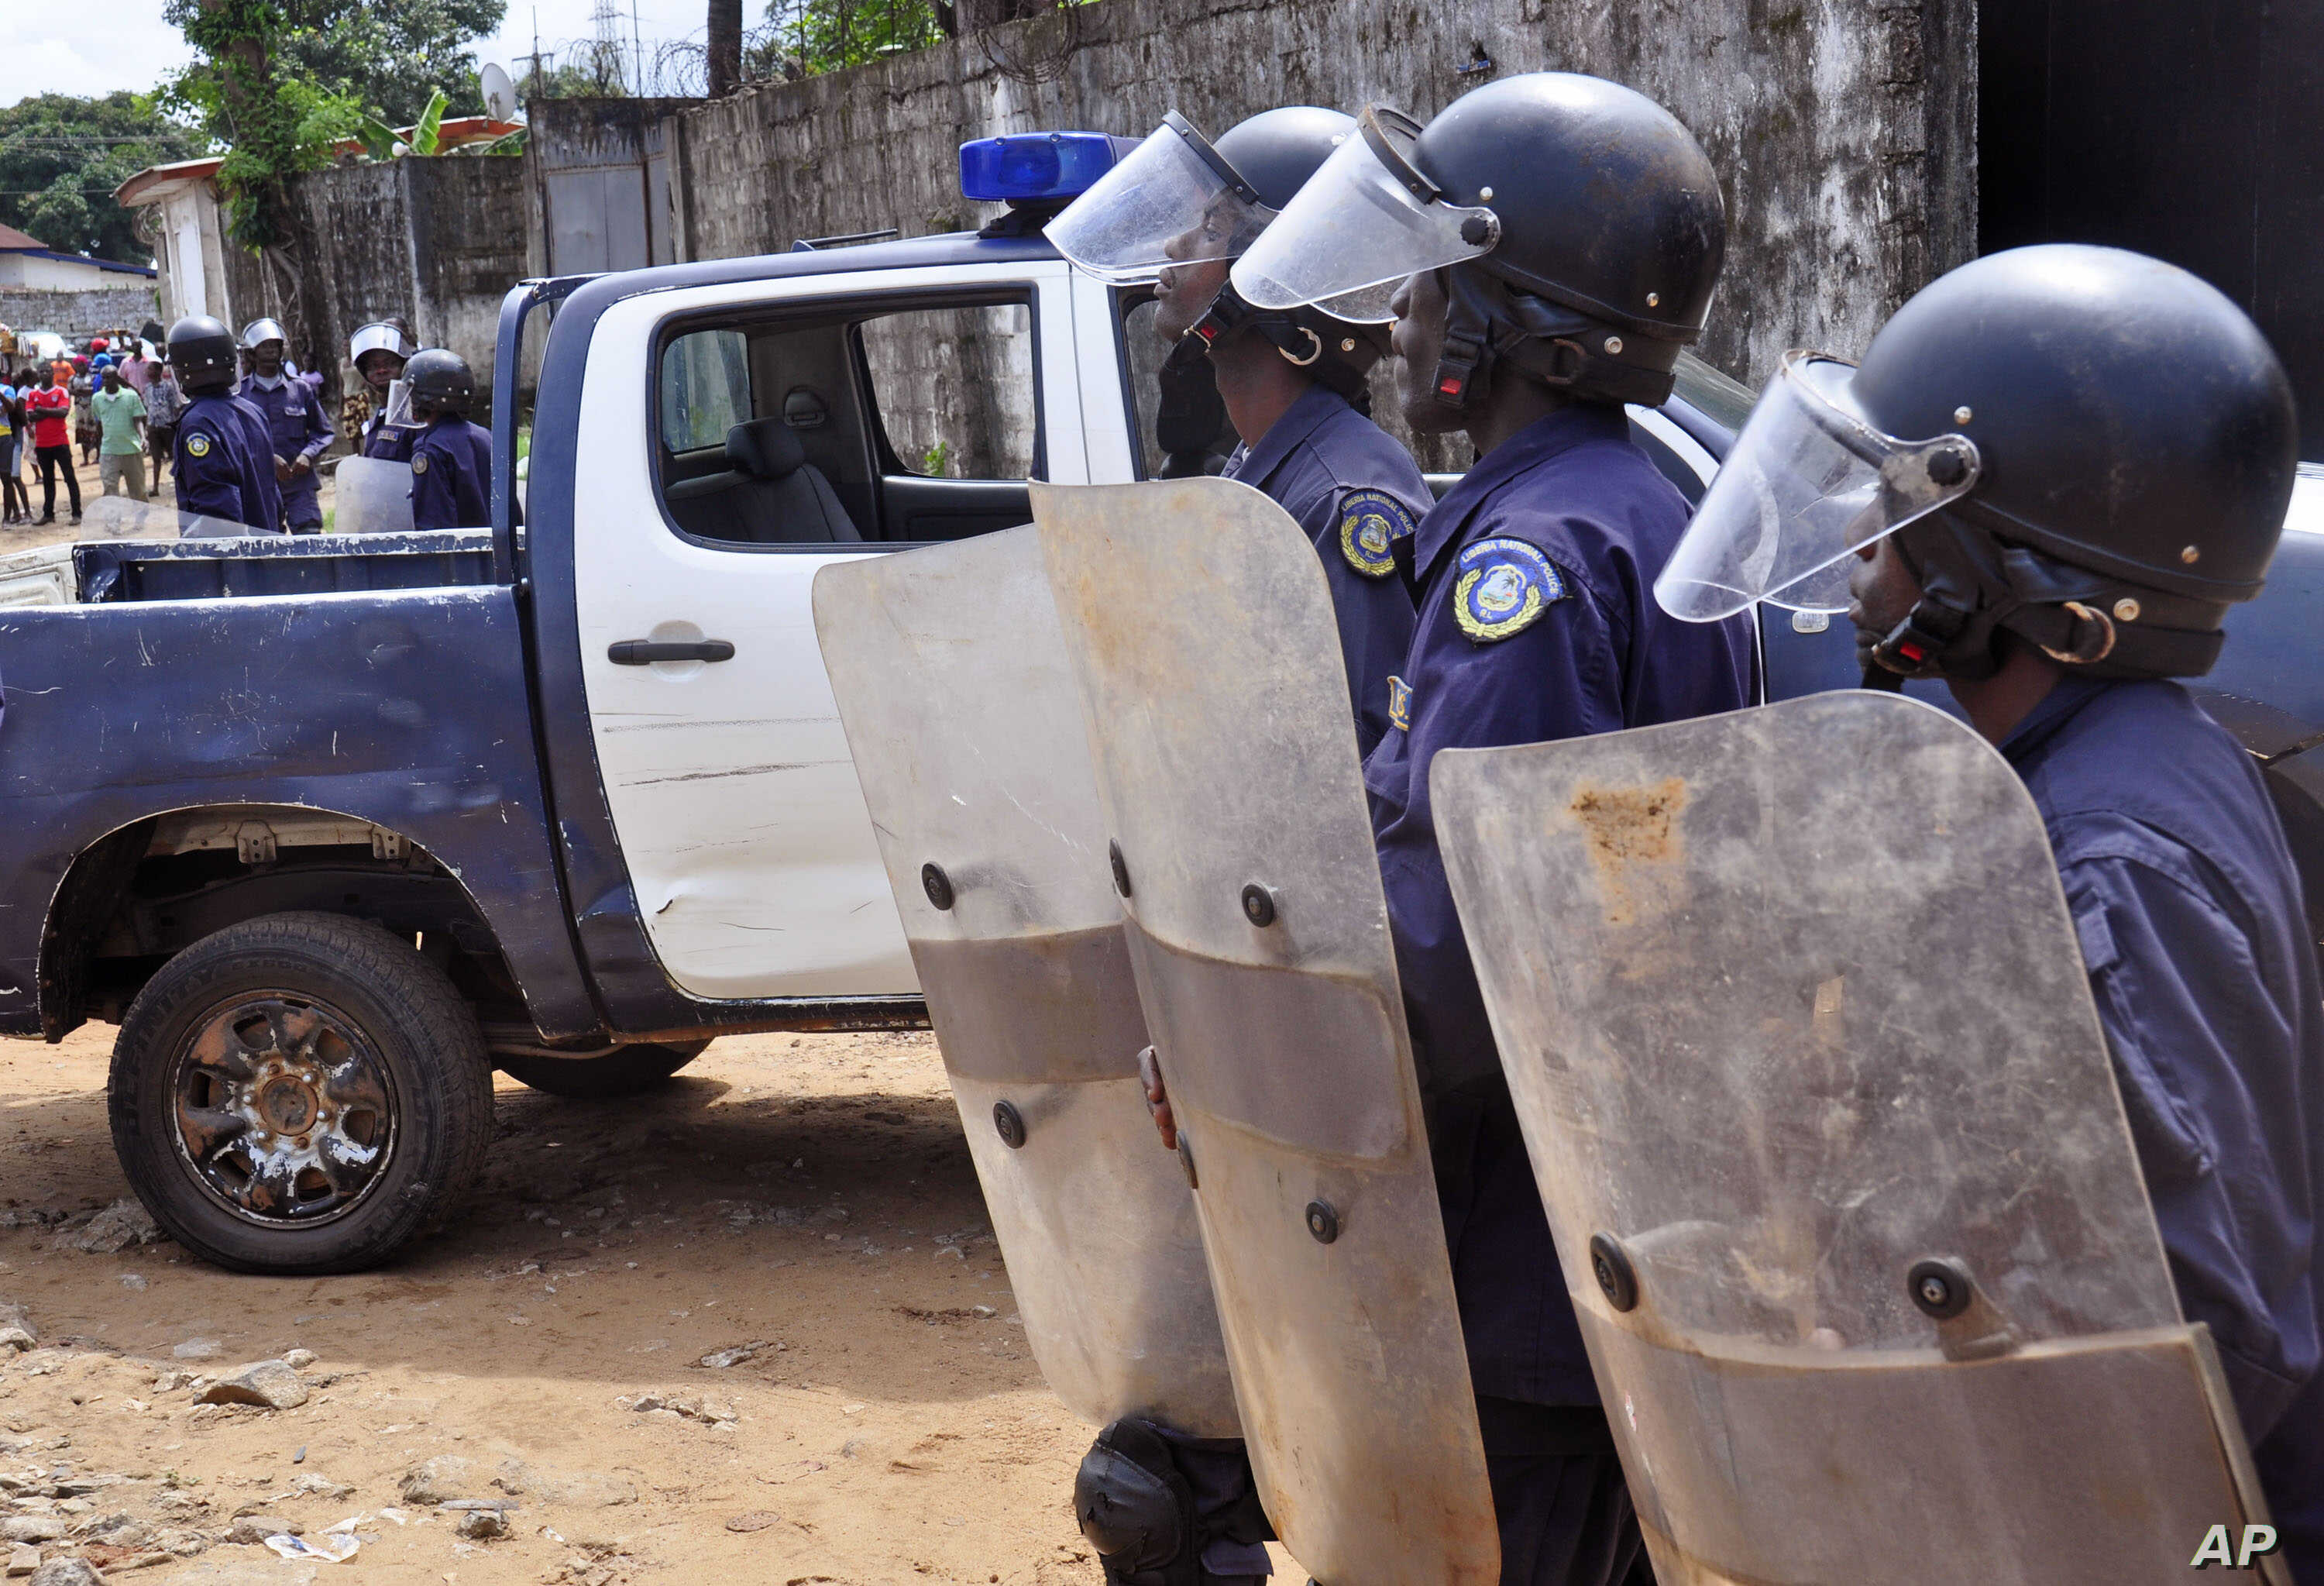 Liberian policemen, right, dressed in riot gear disperse a crowd of people that blocked a main road after the body of someone suspected of dying from the Ebola virus was not removed by health workers in the city of Monrovia, Liberia, Aug. 14, 2014.